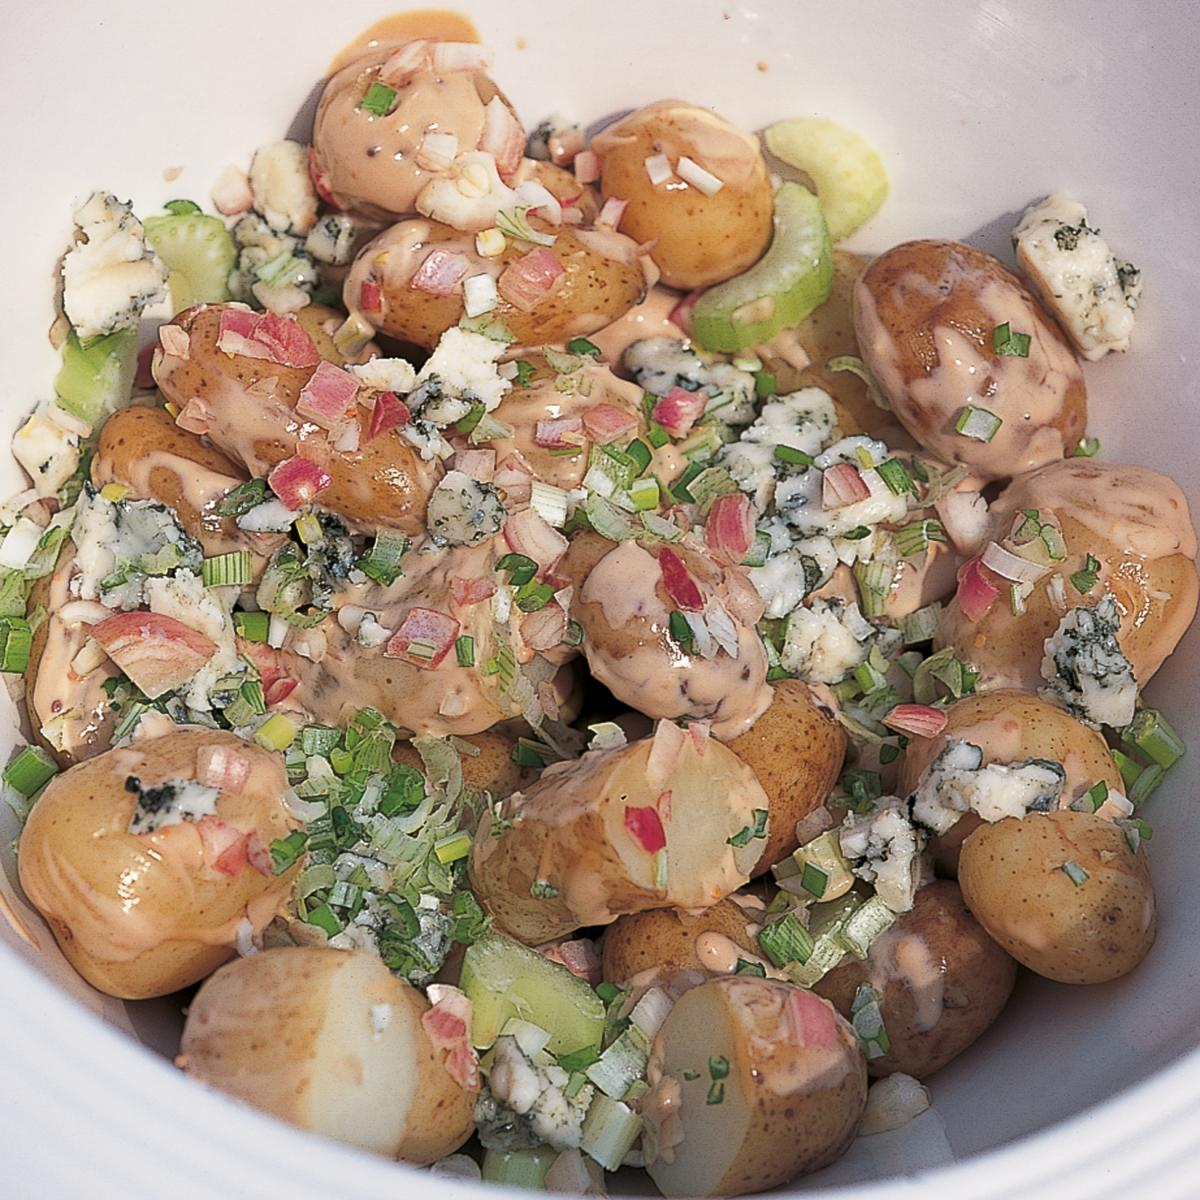 A picture of Delia's Potato Salad with Roquefort recipe